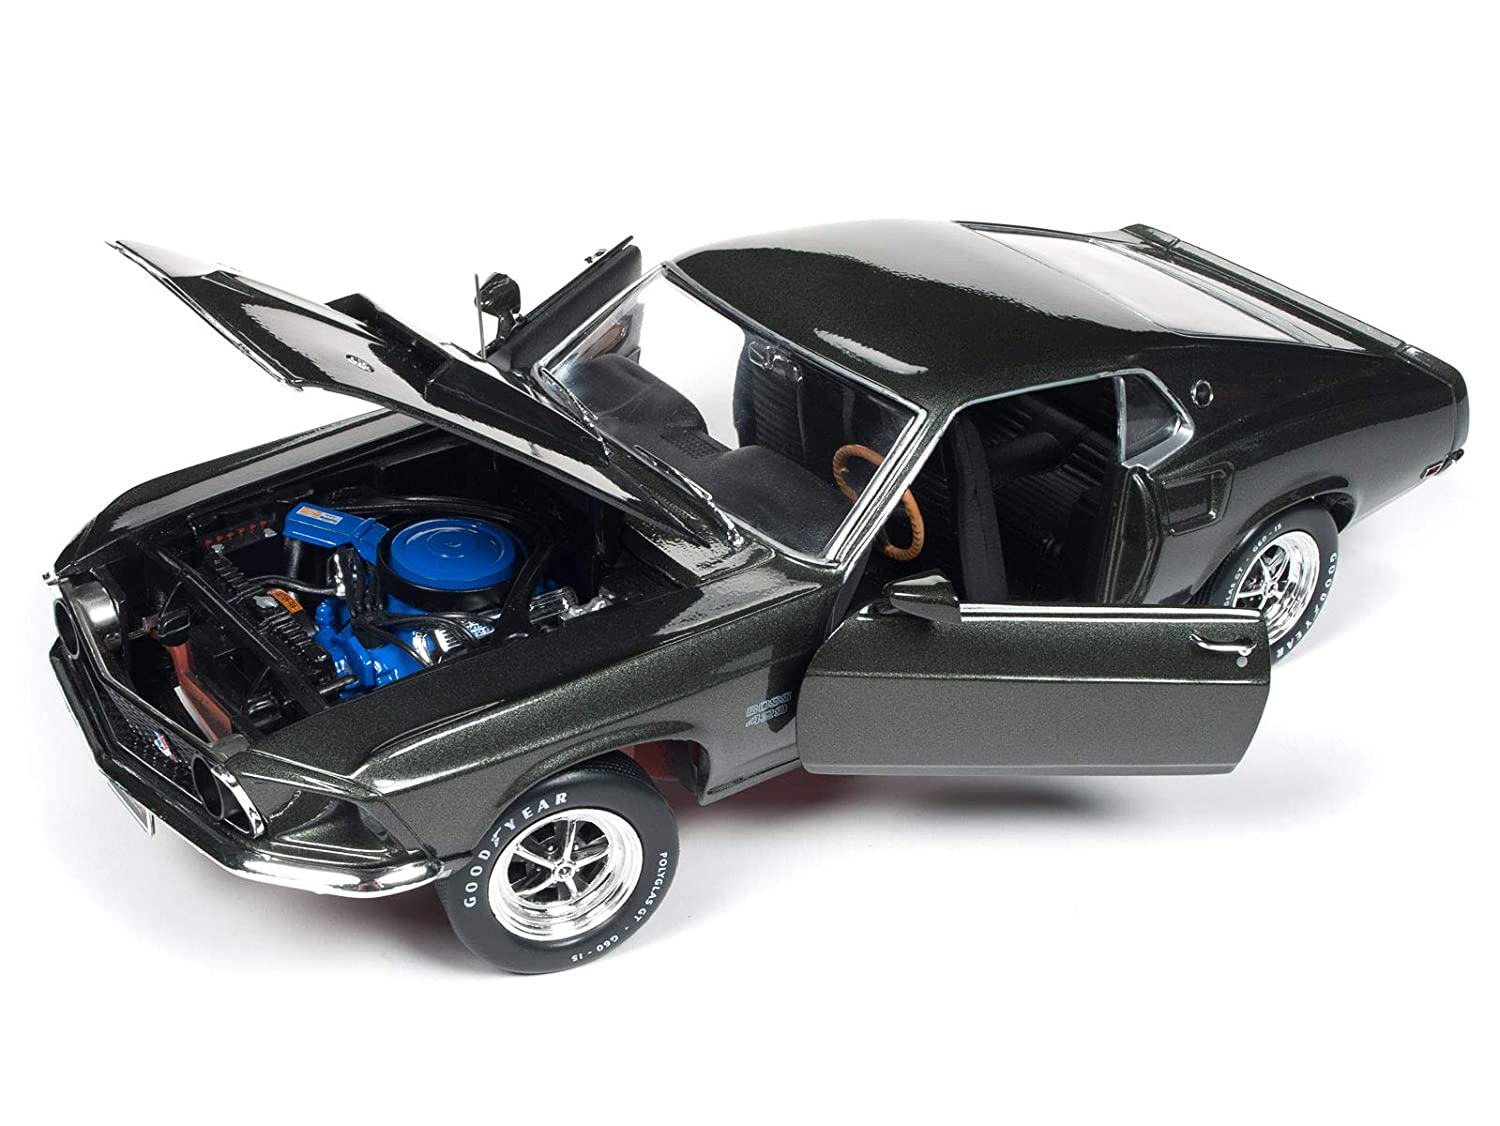 1969 ford mustang boss 429 black jade muscle car corvette nationals mcacn limited edition to 1002 pieces worldwide 1 18 diecast model car by autoworld